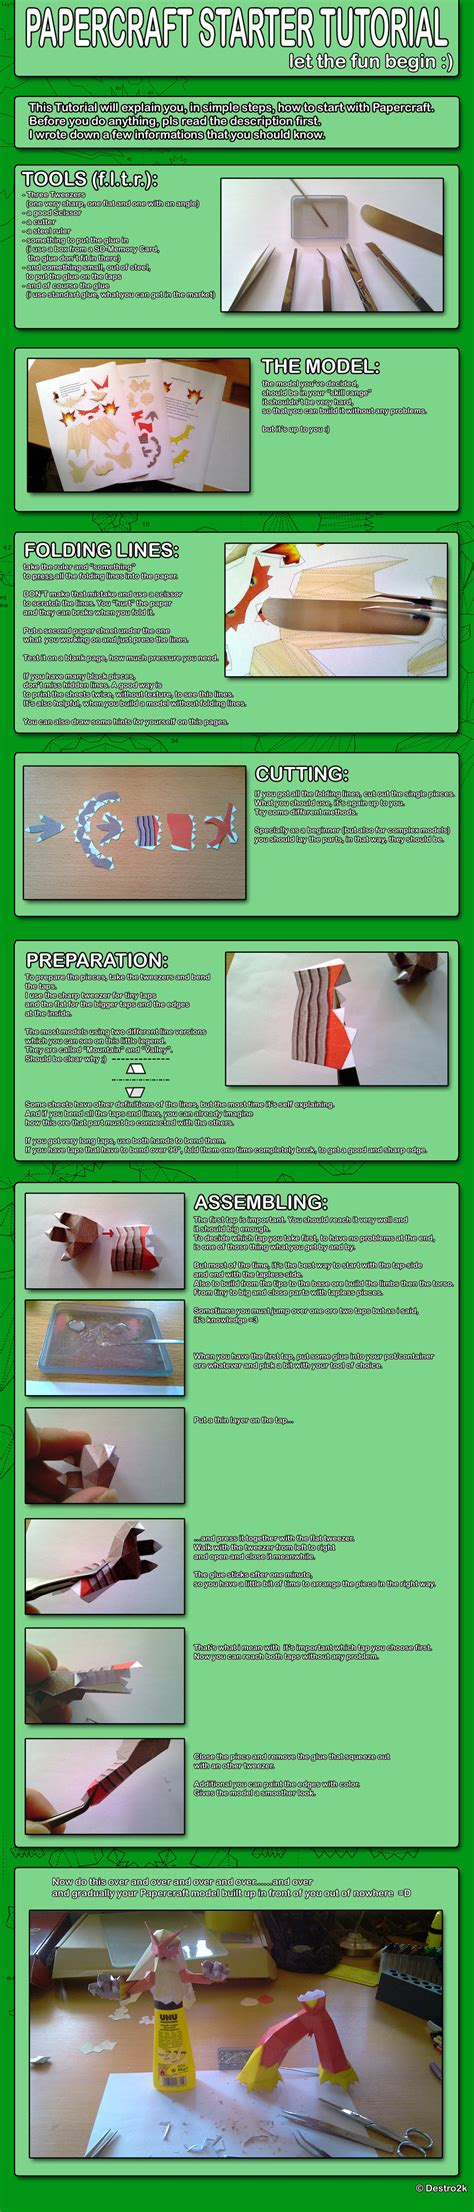 Papercraft Tutorial - papercraft starter tutorial by destro2k on deviantart